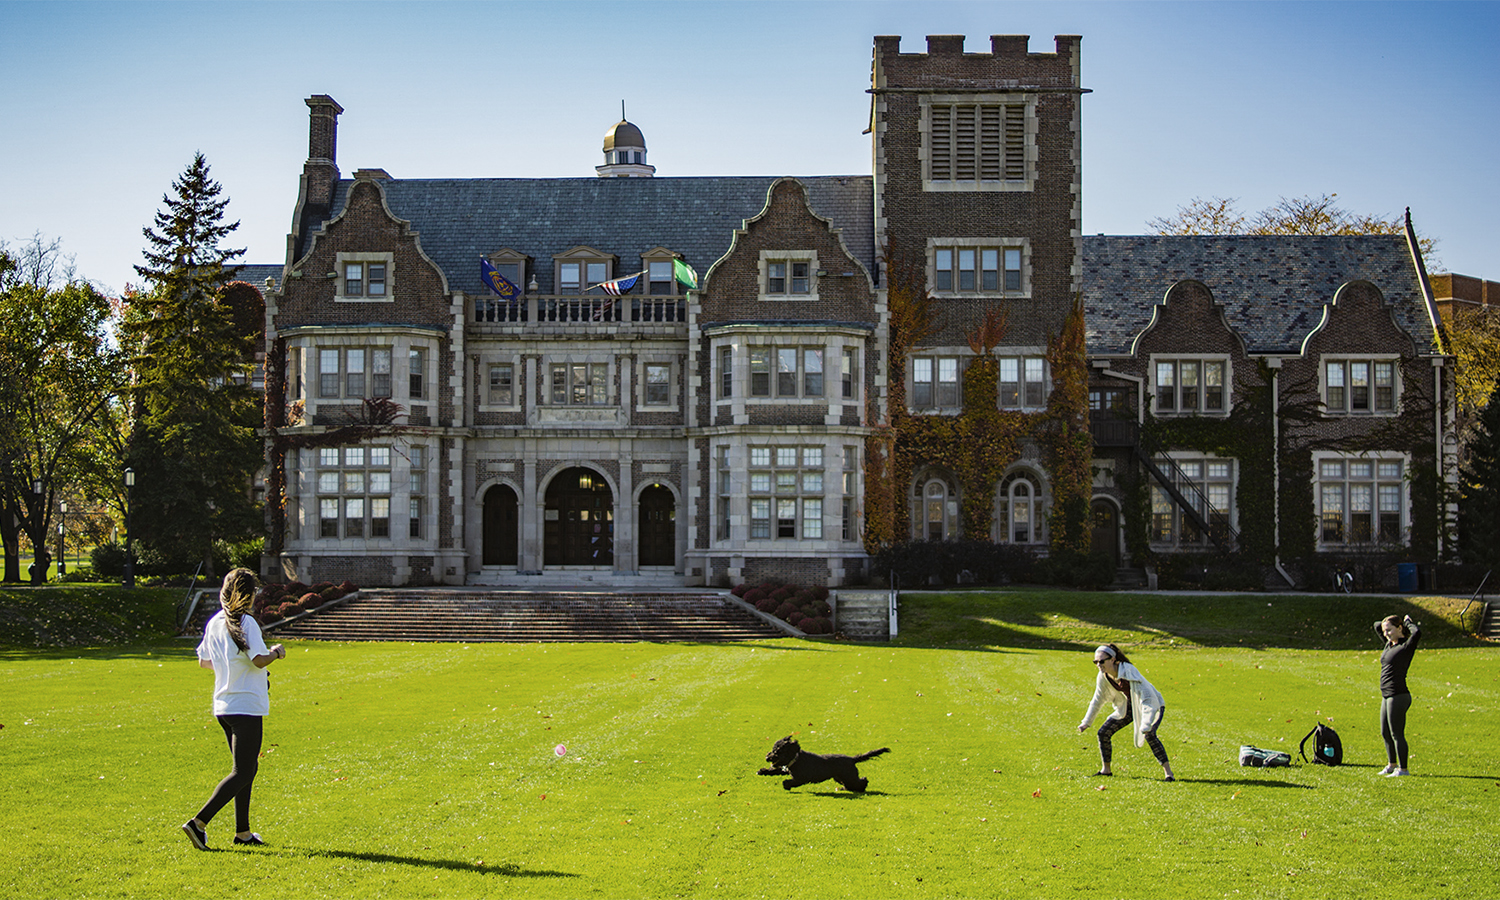 Liza Alexakos '20, Lily Shea '20, and Hadley Browning '20 play fetch with their dog Bea on the Quad.